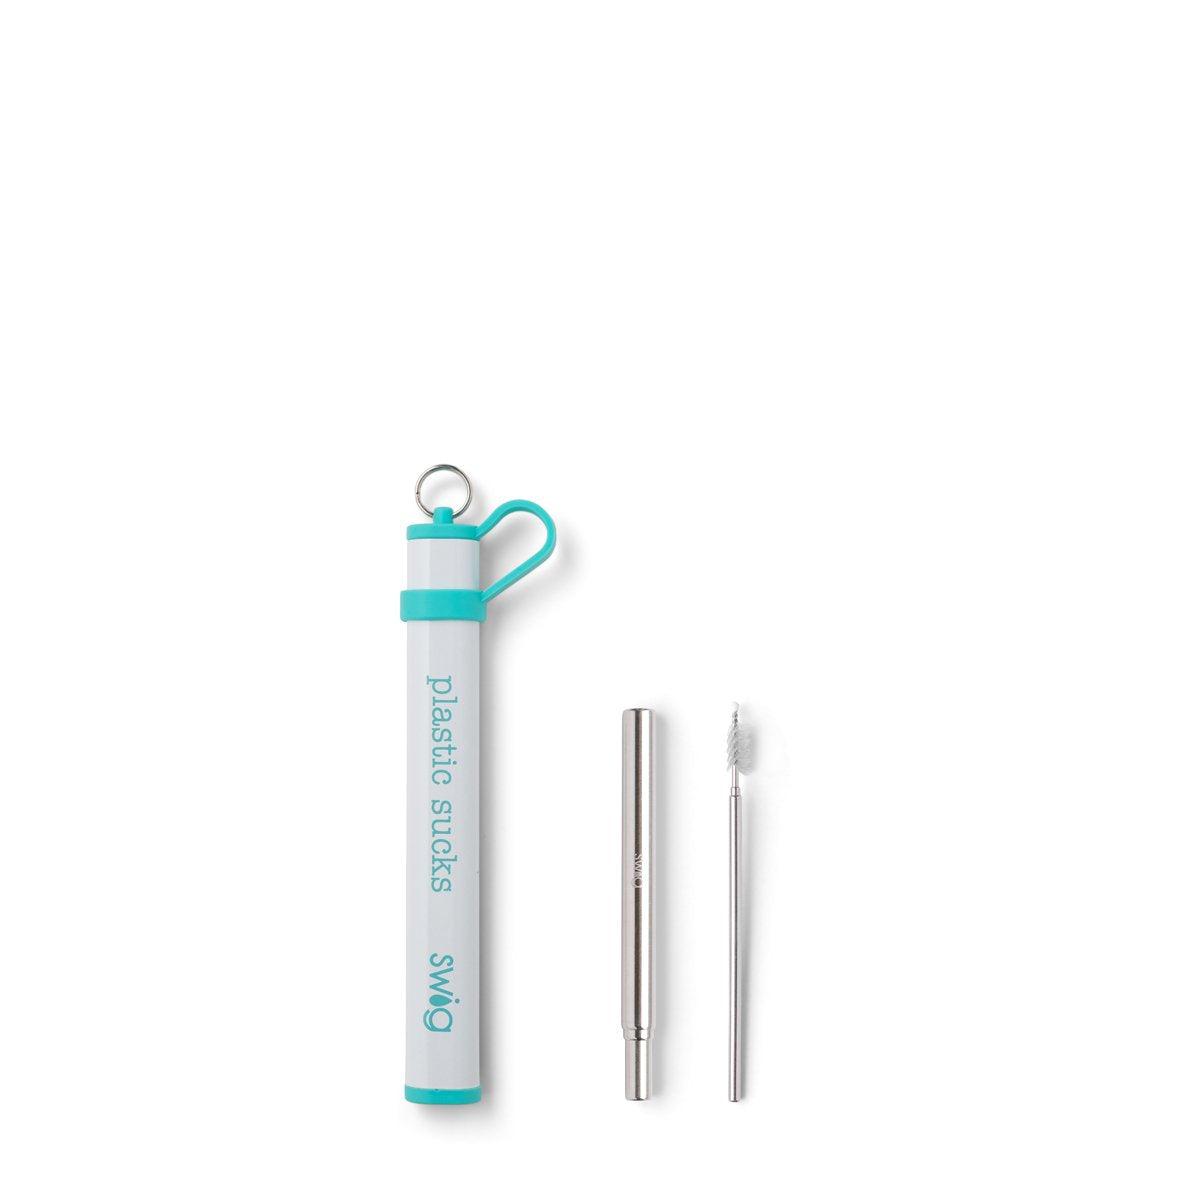 Swig - Telescopic Stainless Steel Straw Set - PLASTIC SUCKS